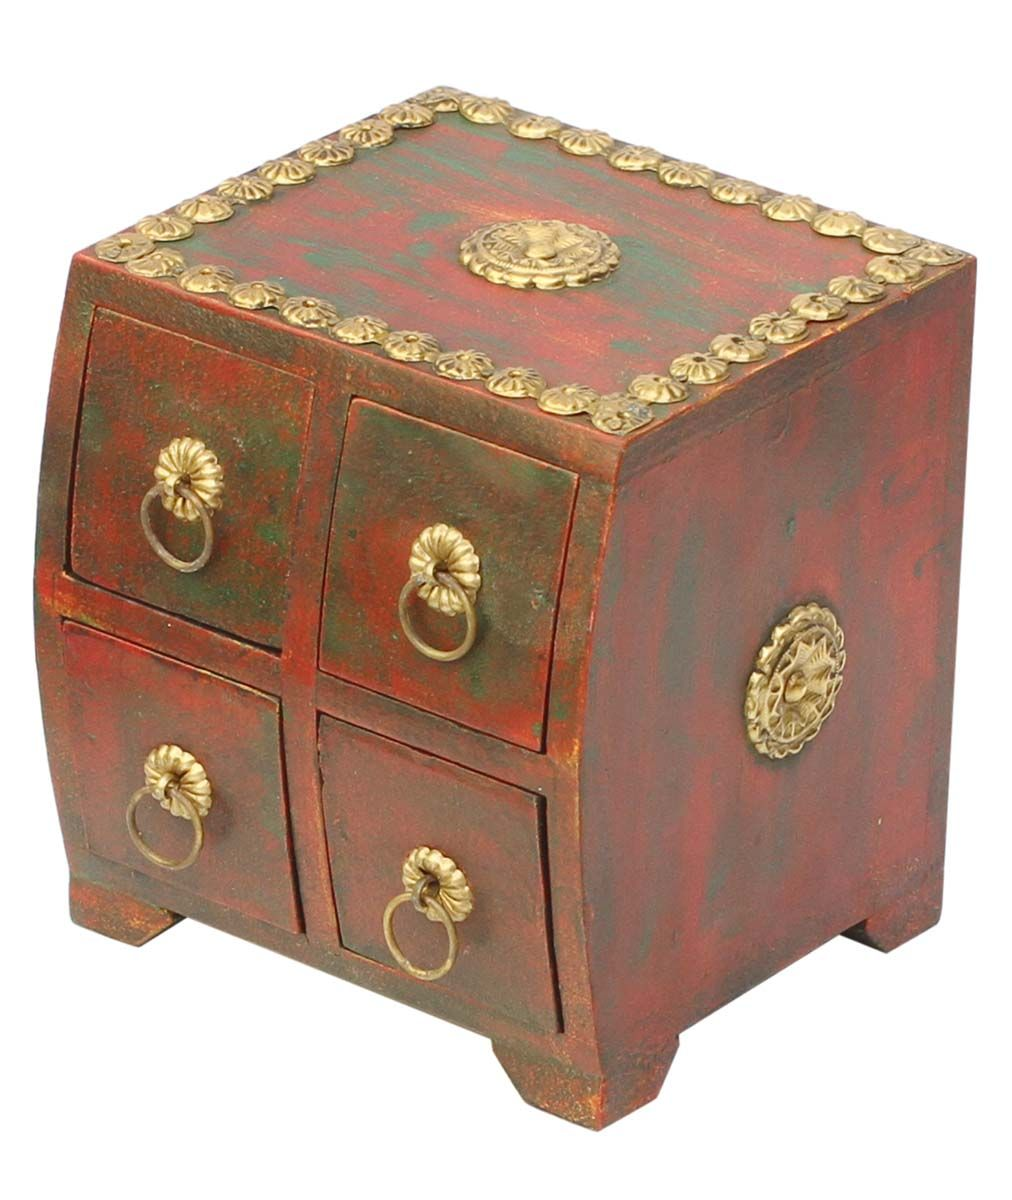 Bulk Wholesale Handmade 5 5 Wooden Rustic Maroon Jewelry Box With 4 Chest Drawers Decorated With Brass Handle Brass Handles Handmade Jewelry Box Trinket Boxes